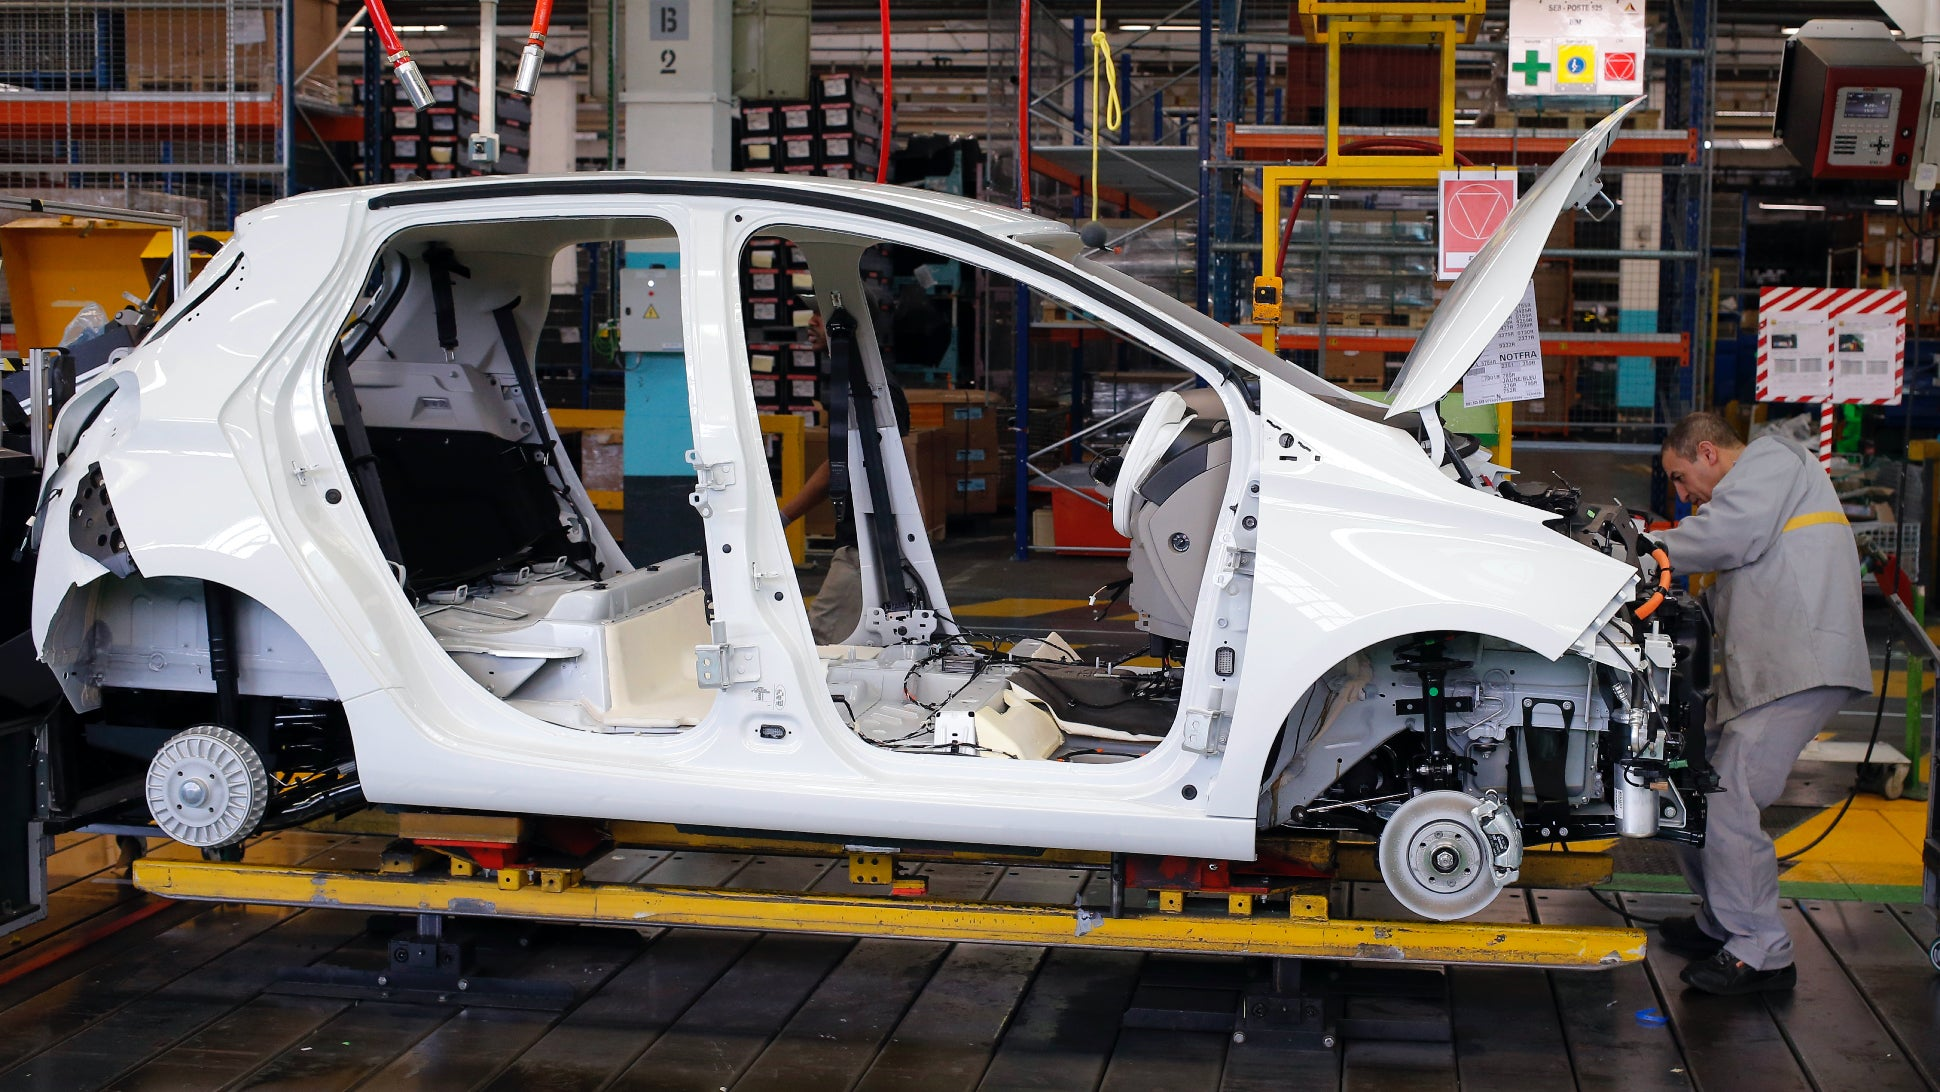 Renault And Nissan Plants Hit By Massive Ransomware Attack